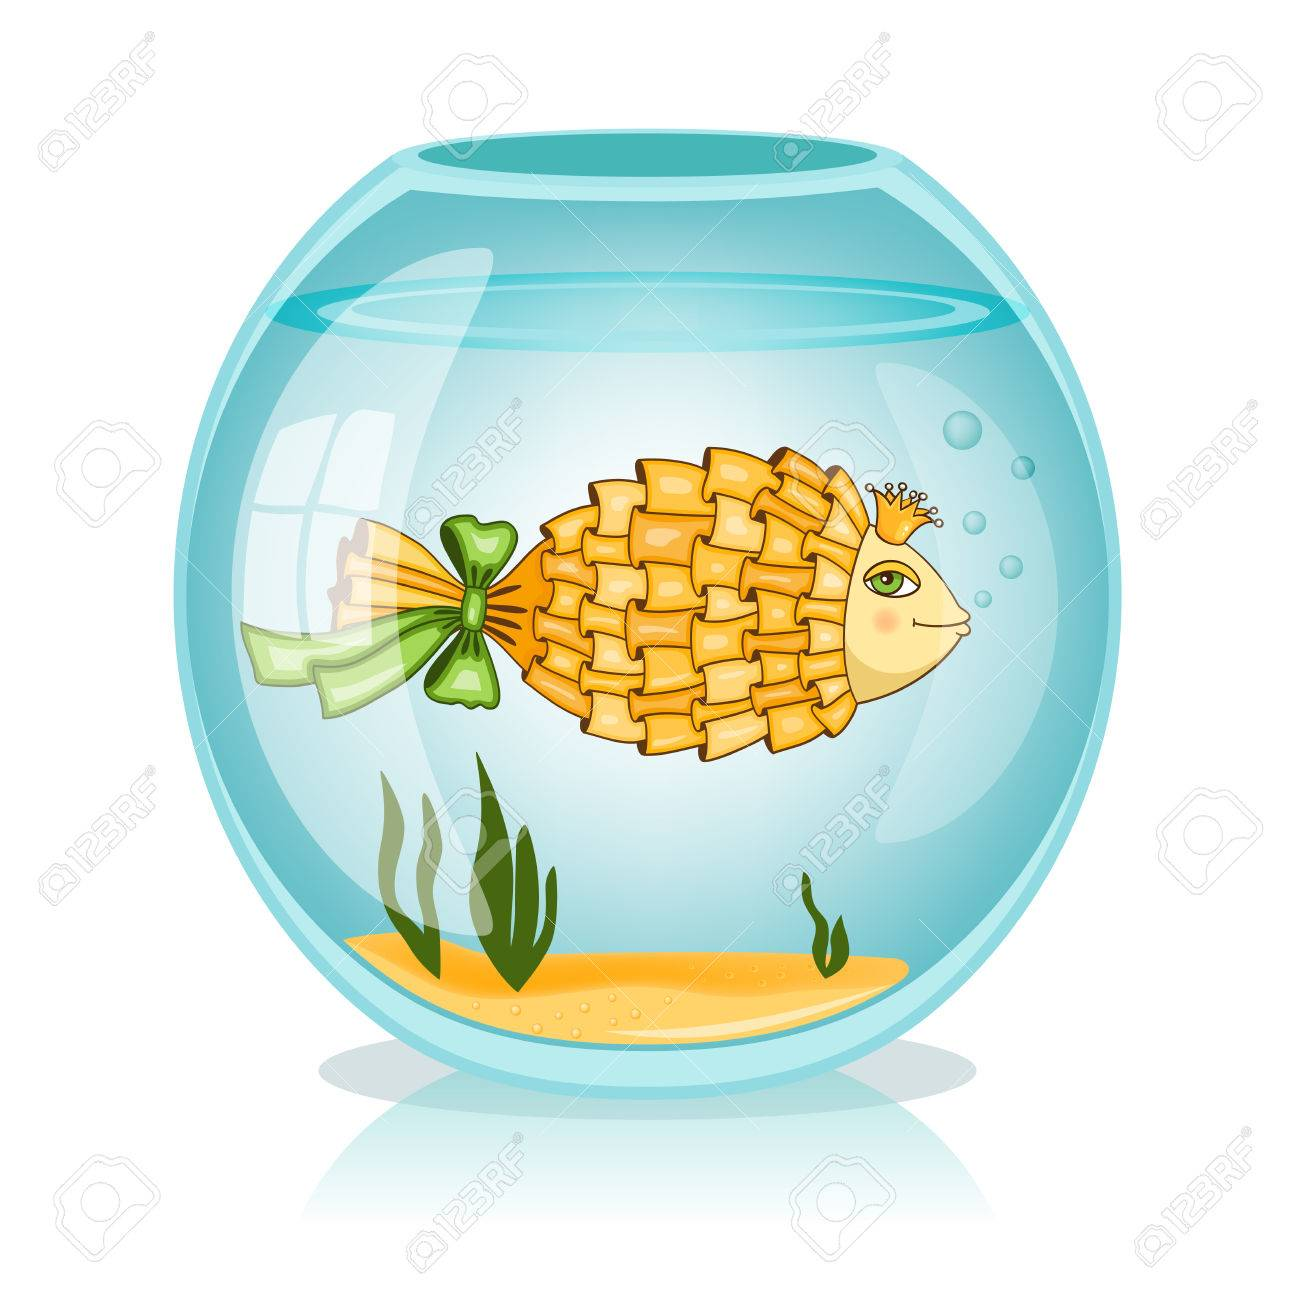 Goldfish in the bowl vector illustration Stock Vector - 24164079